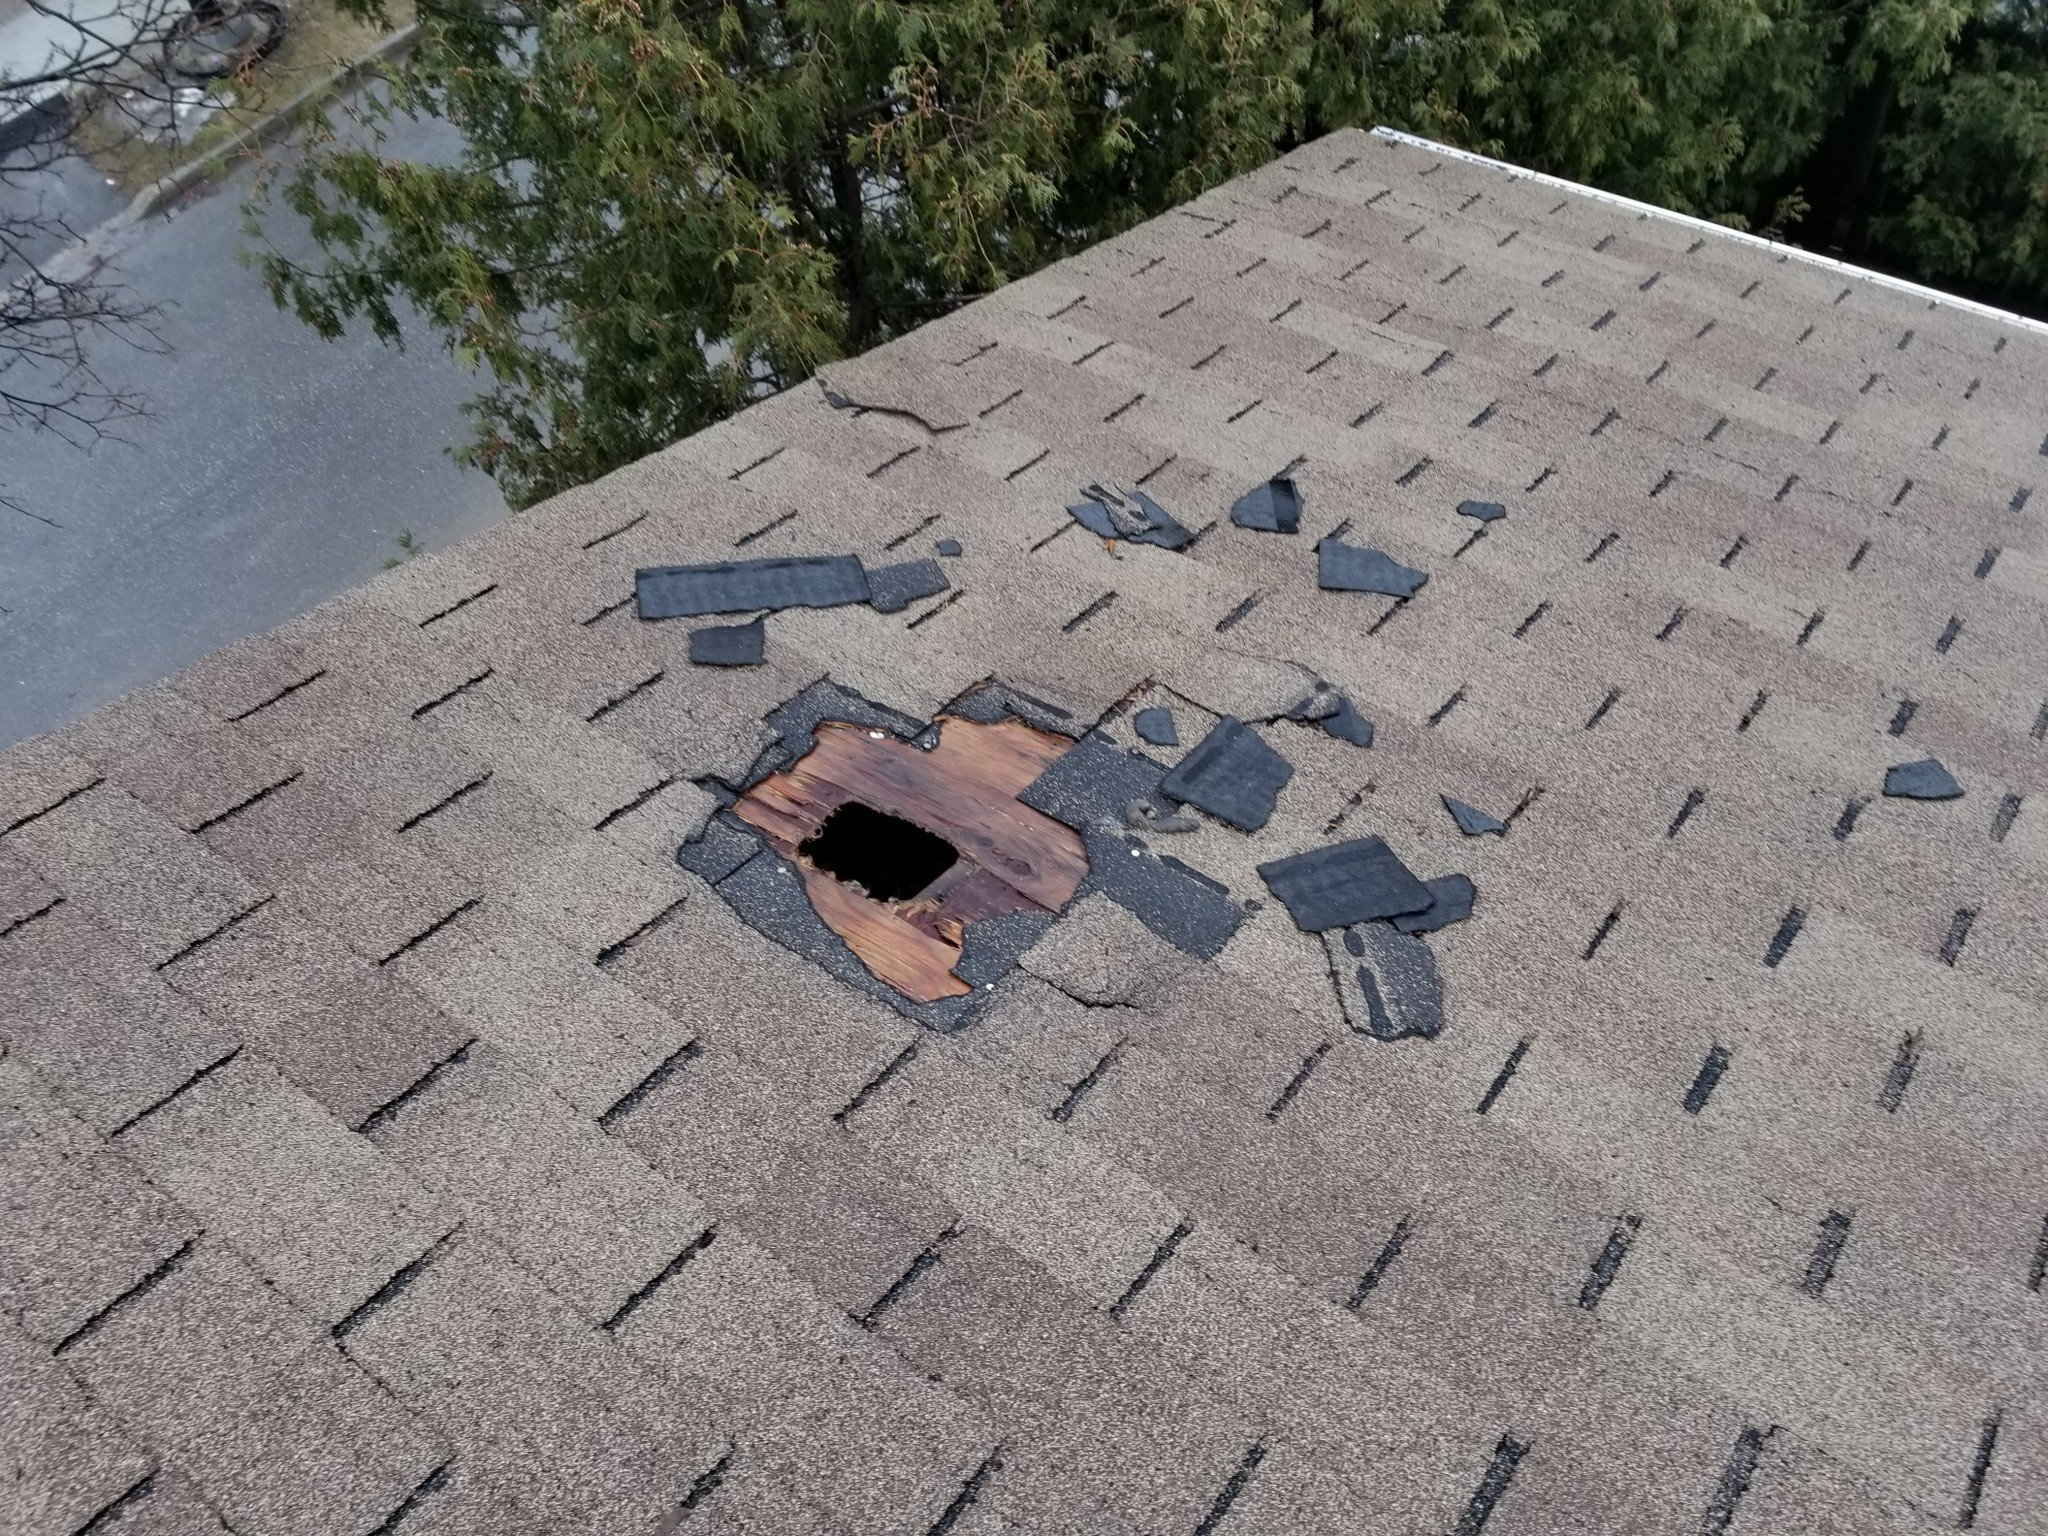 Roof destruction by raccoons